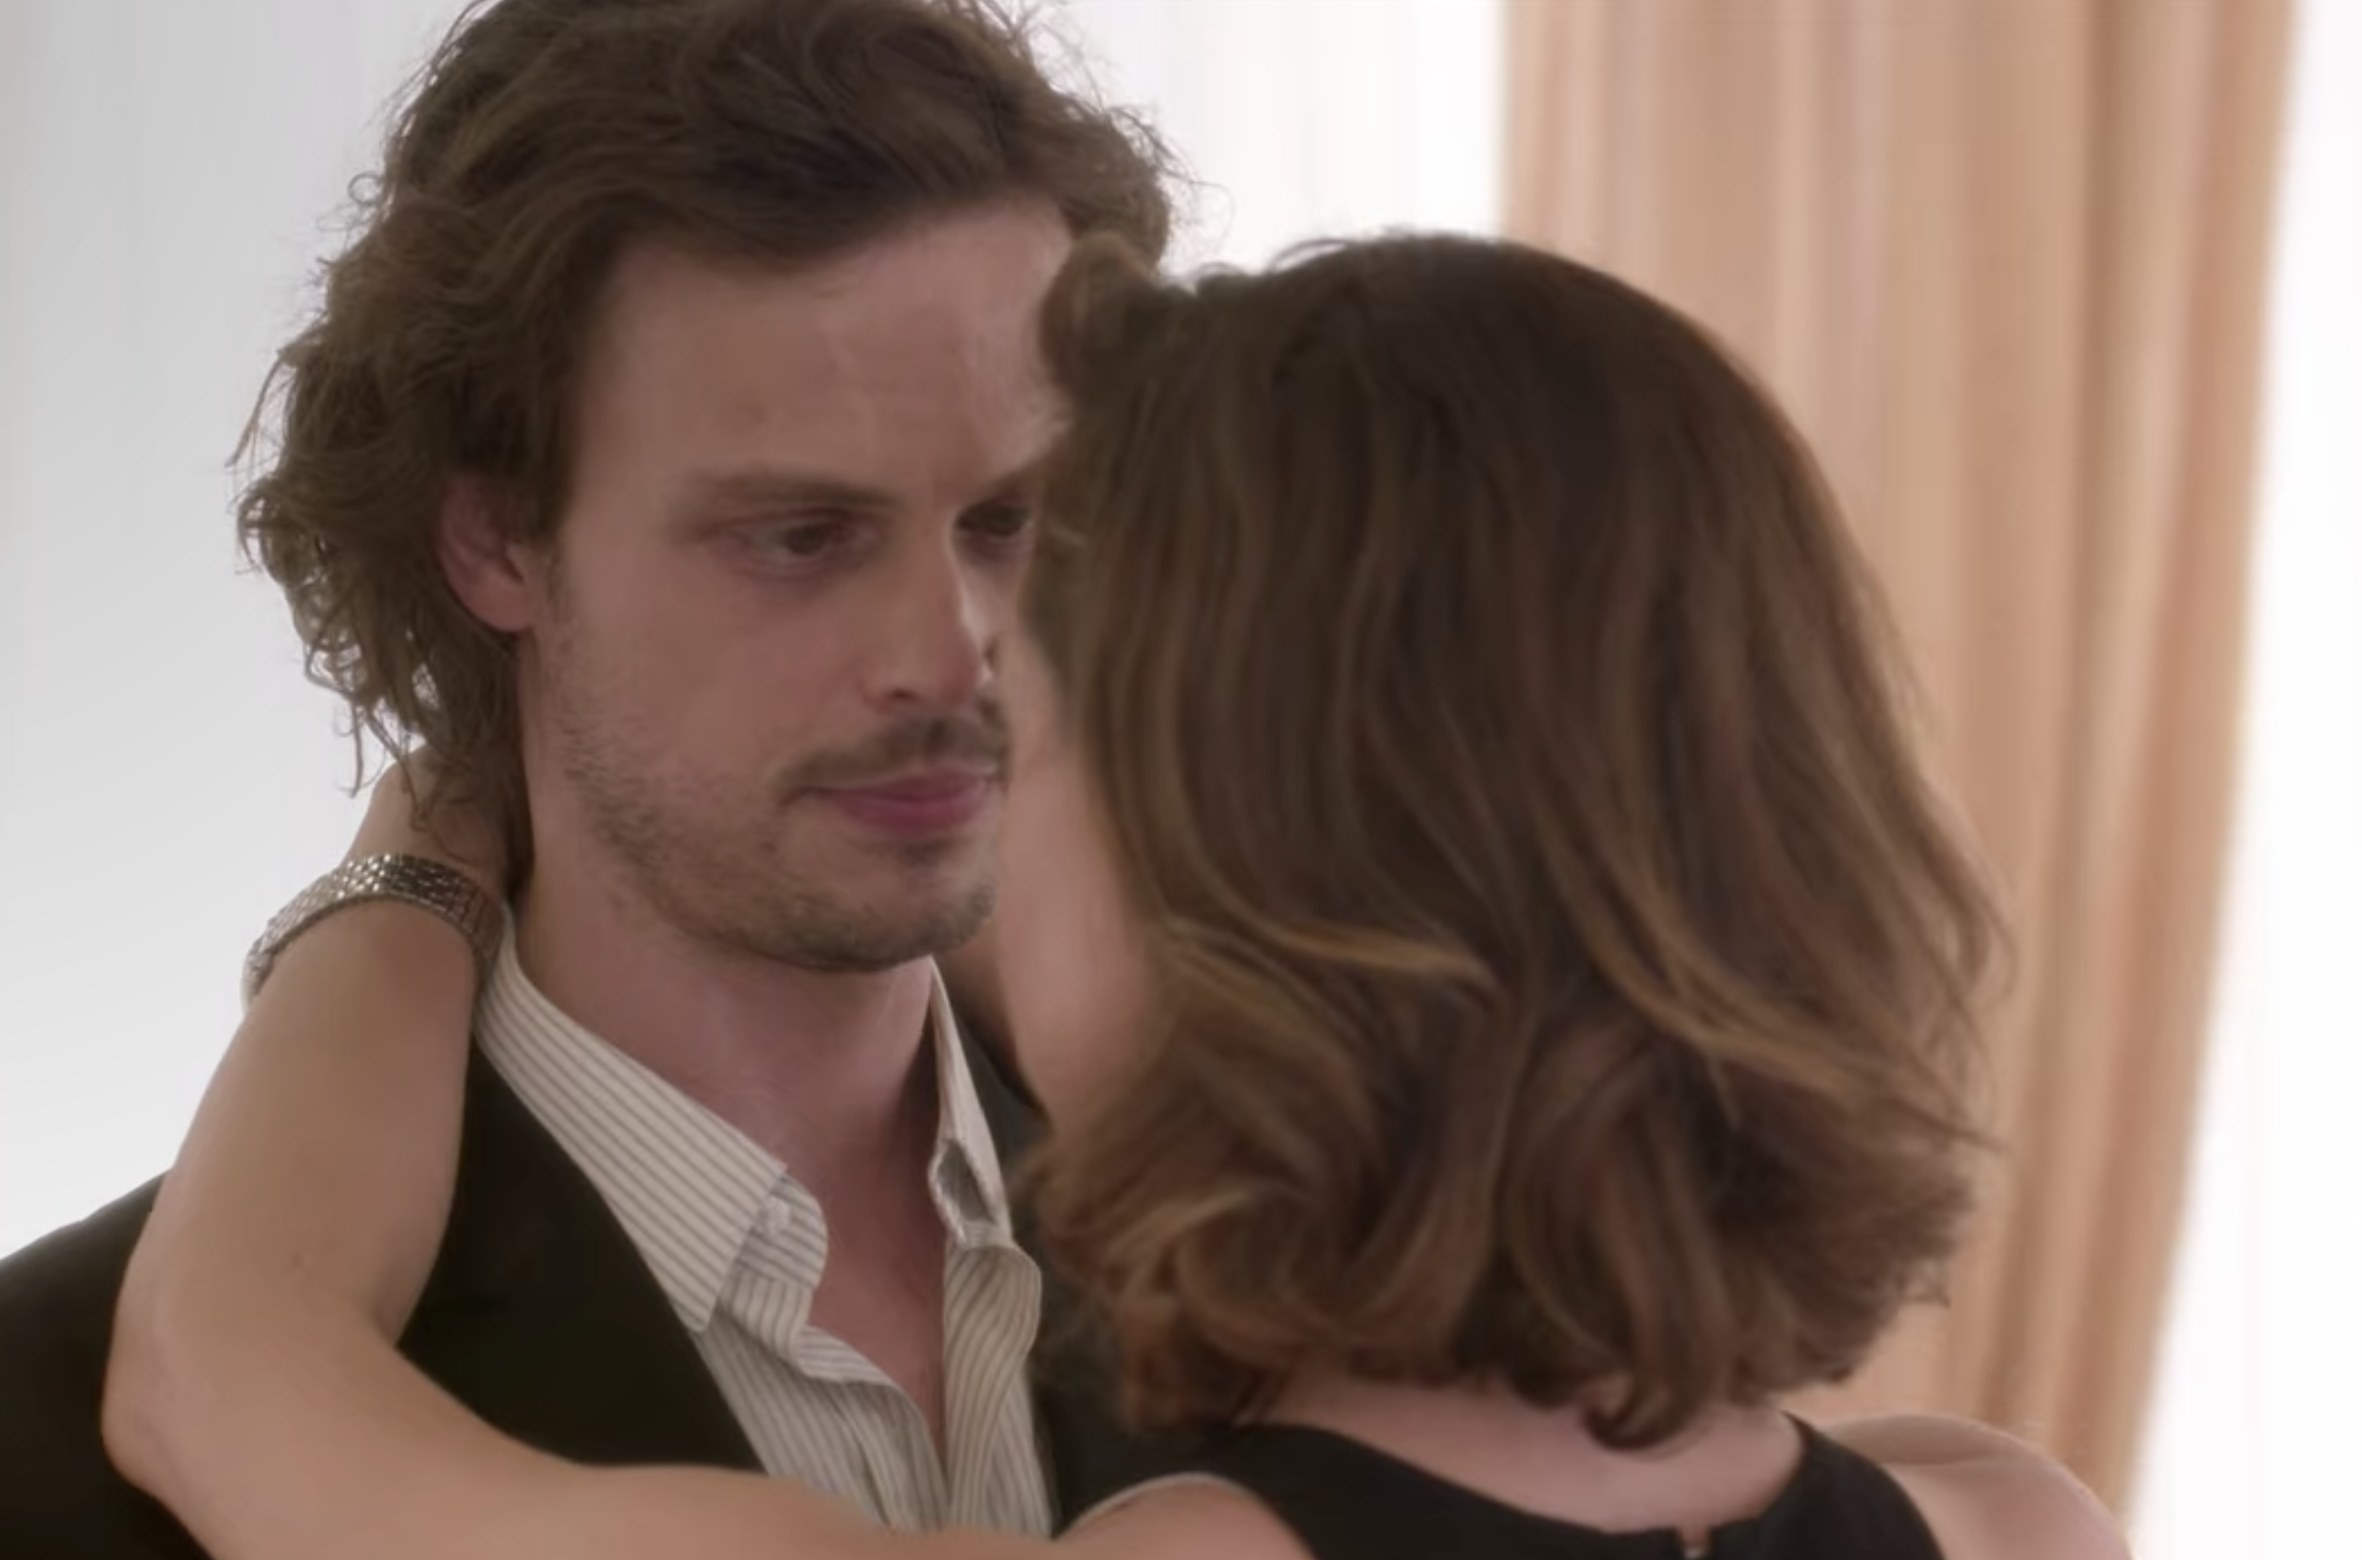 Spencer Reid from Criminal Minds slow dancing with a person